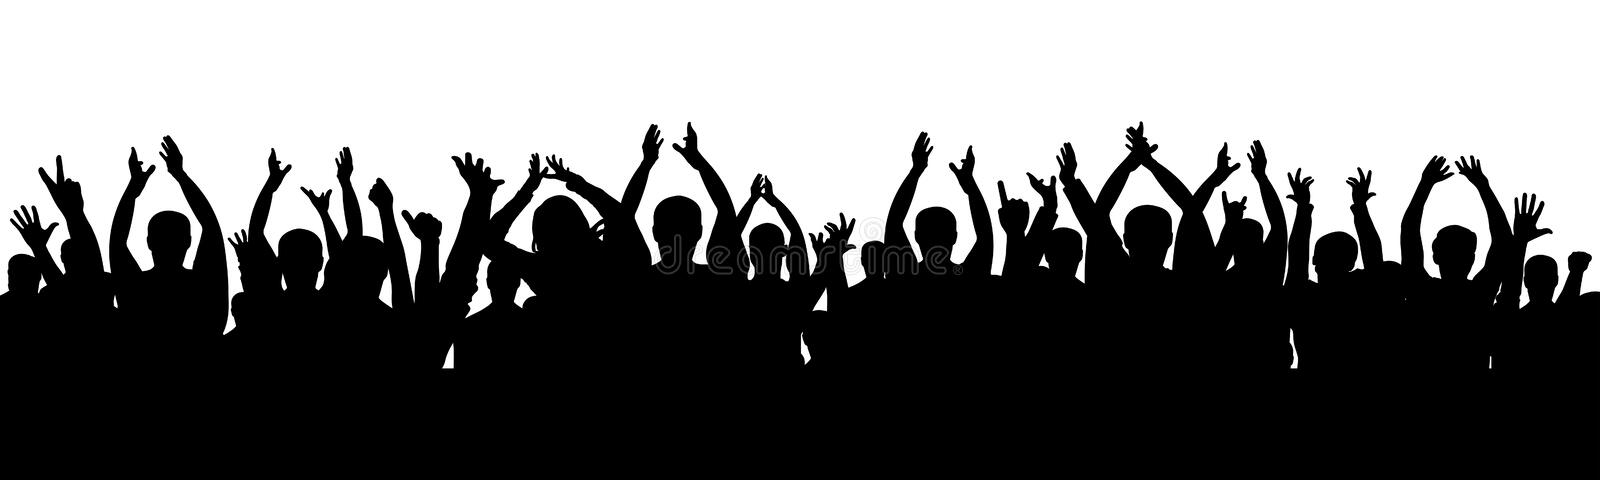 Cheer audience applause. Crowd of people applauding vector illustration